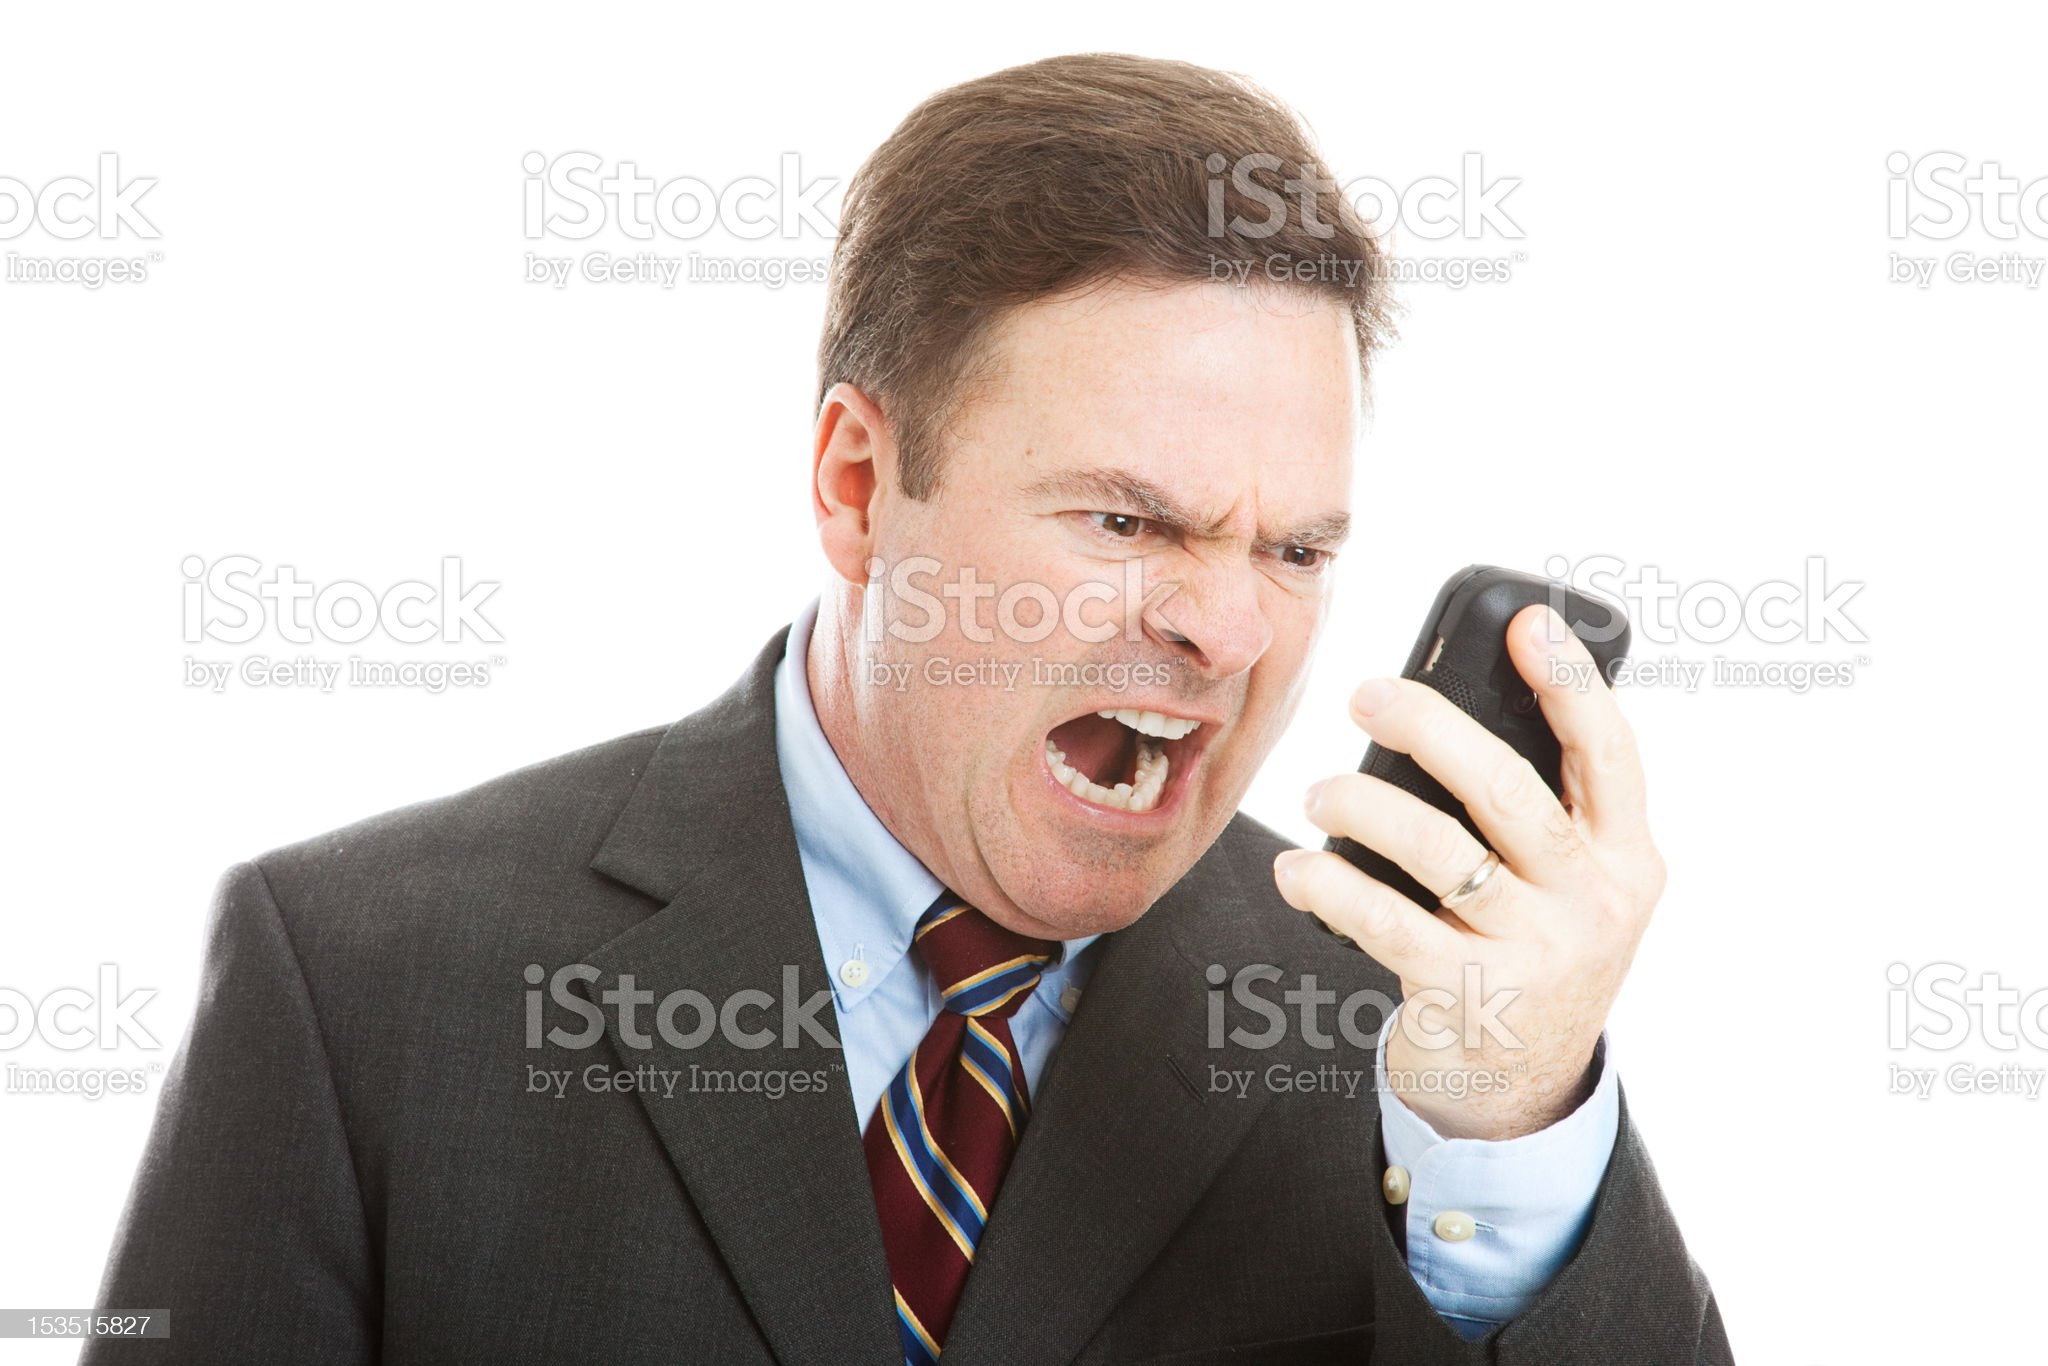 Angry Businessman Yelling into Phone royalty-free stock photo